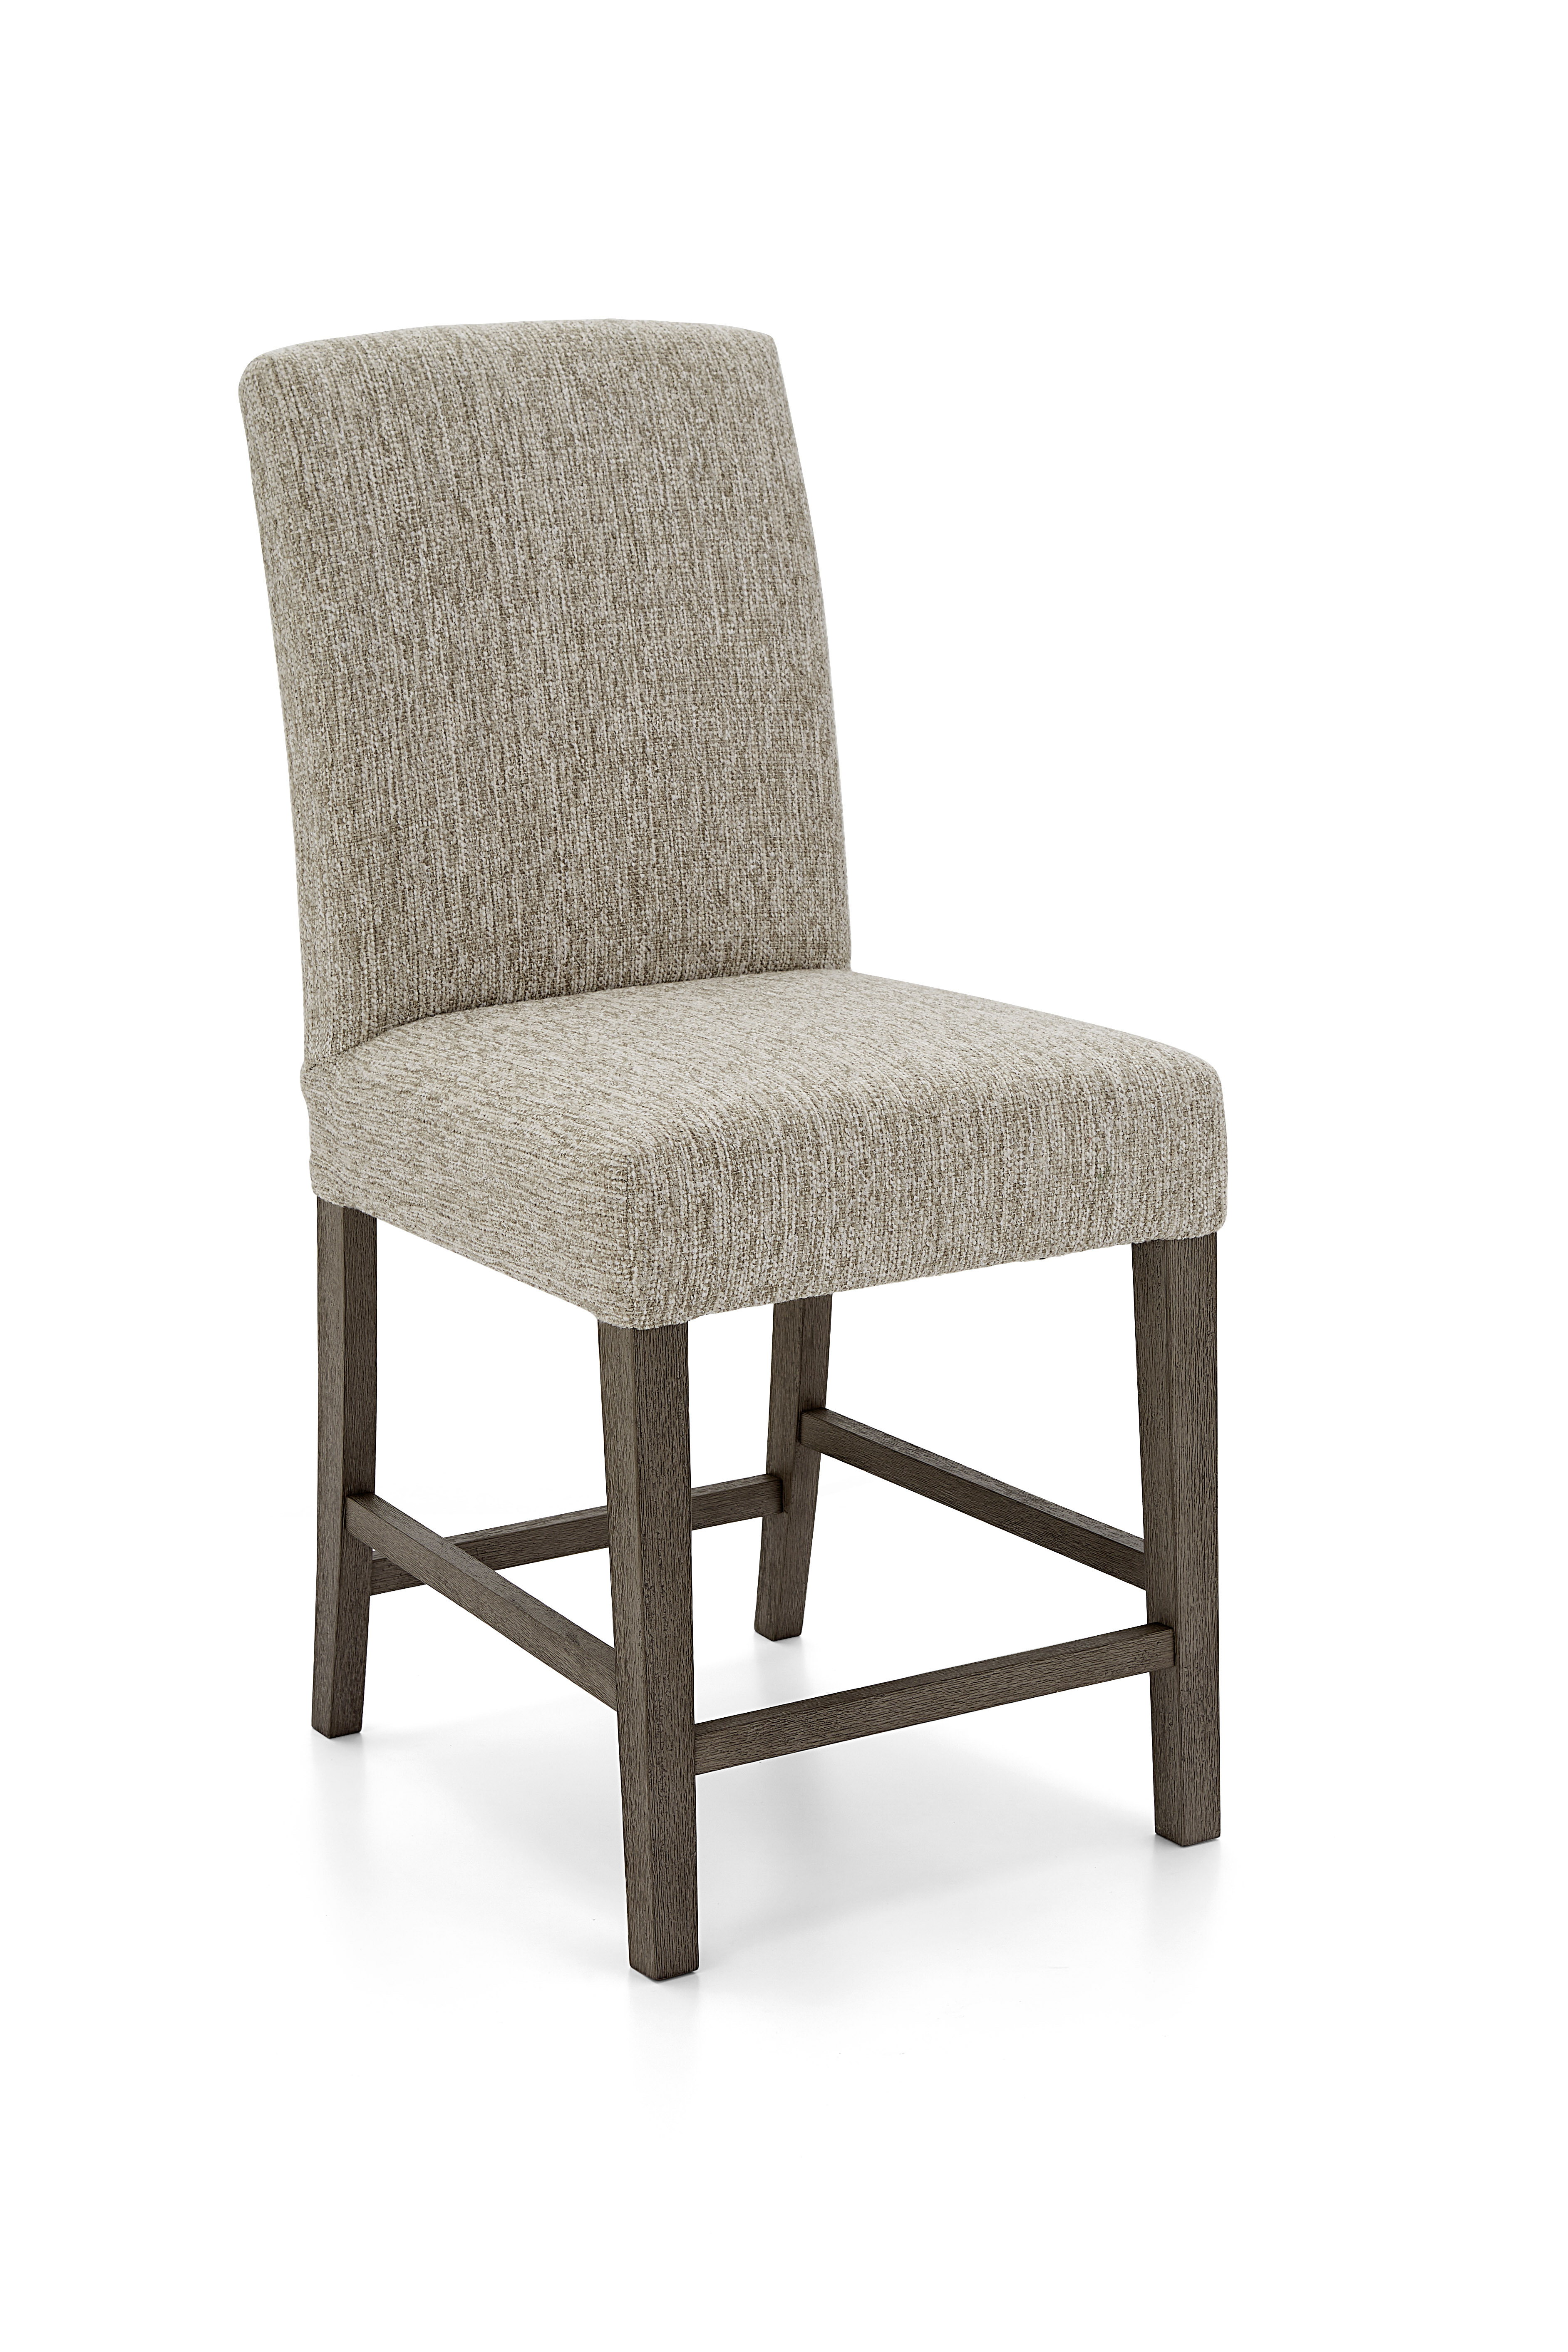 """Myerlette 24"""" Counter Stool by Best Home Furnishings at Van Hill Furniture"""